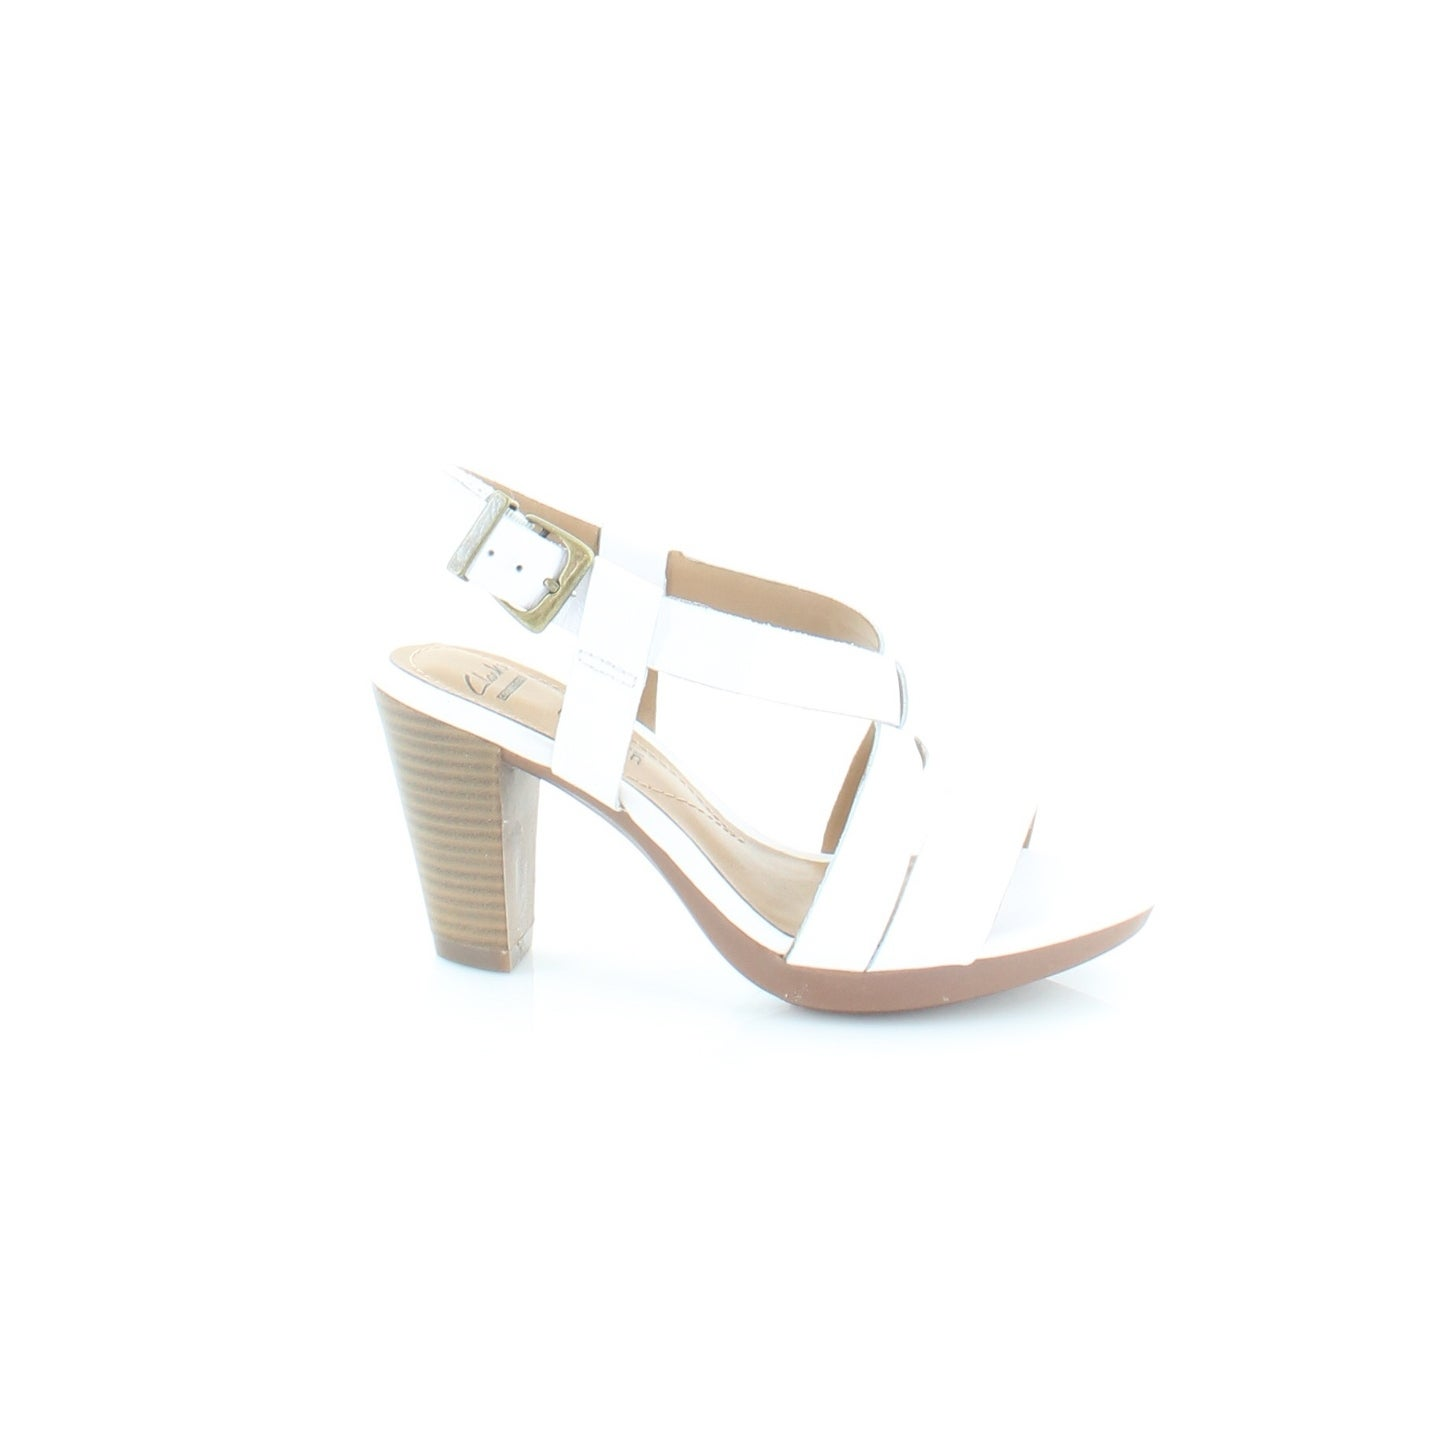 e4f0585bc67 Shop Clarks Jaelyn Fog Women s Sandals White - 5 - Ships To Canada -  Overstock - 23550563